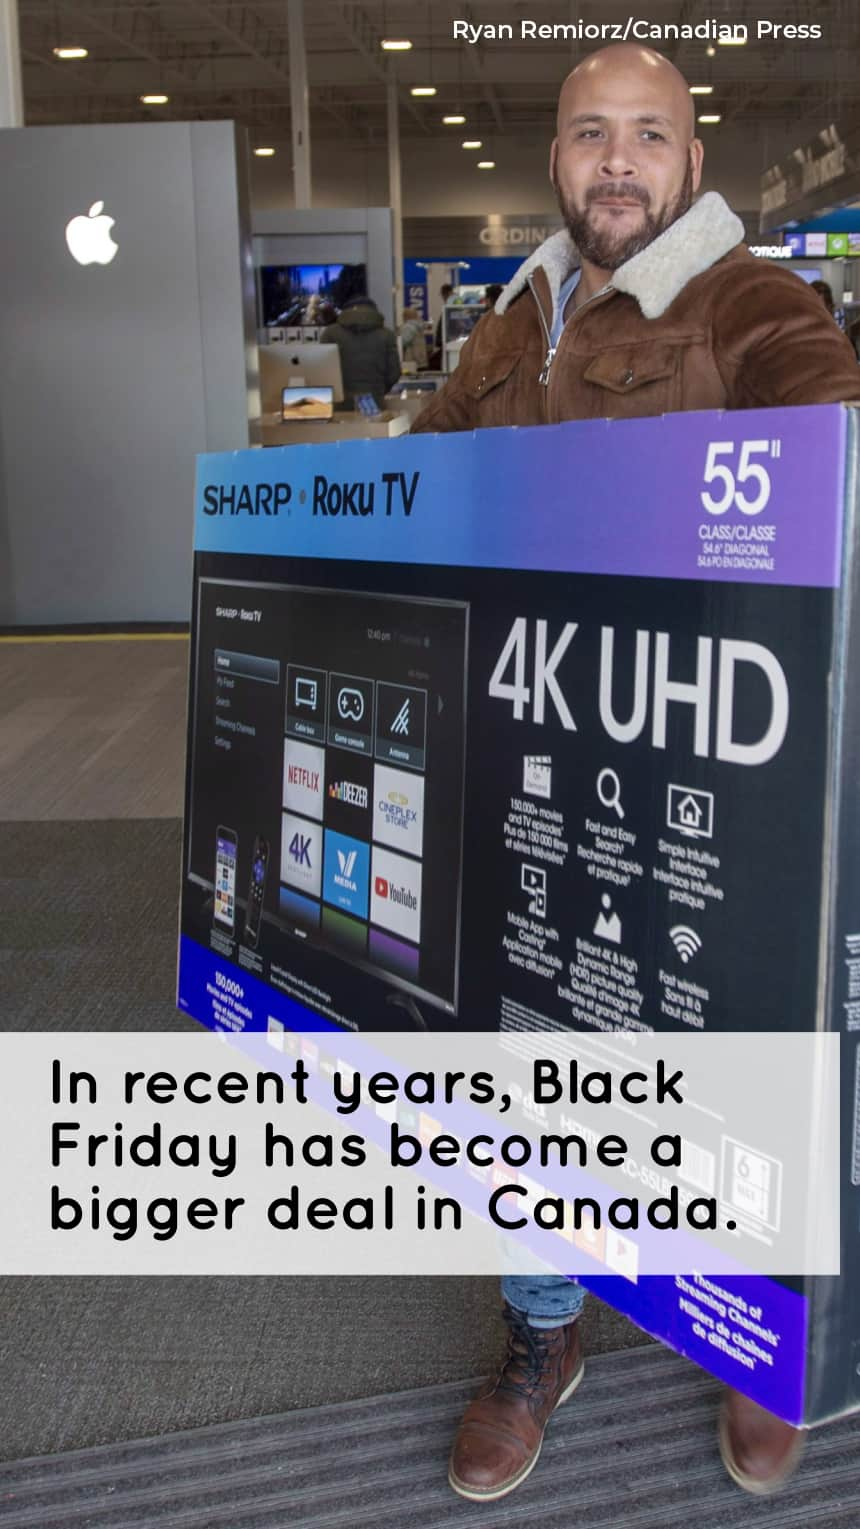 In recent years, Black Friday has become a bigger deal in Canada.